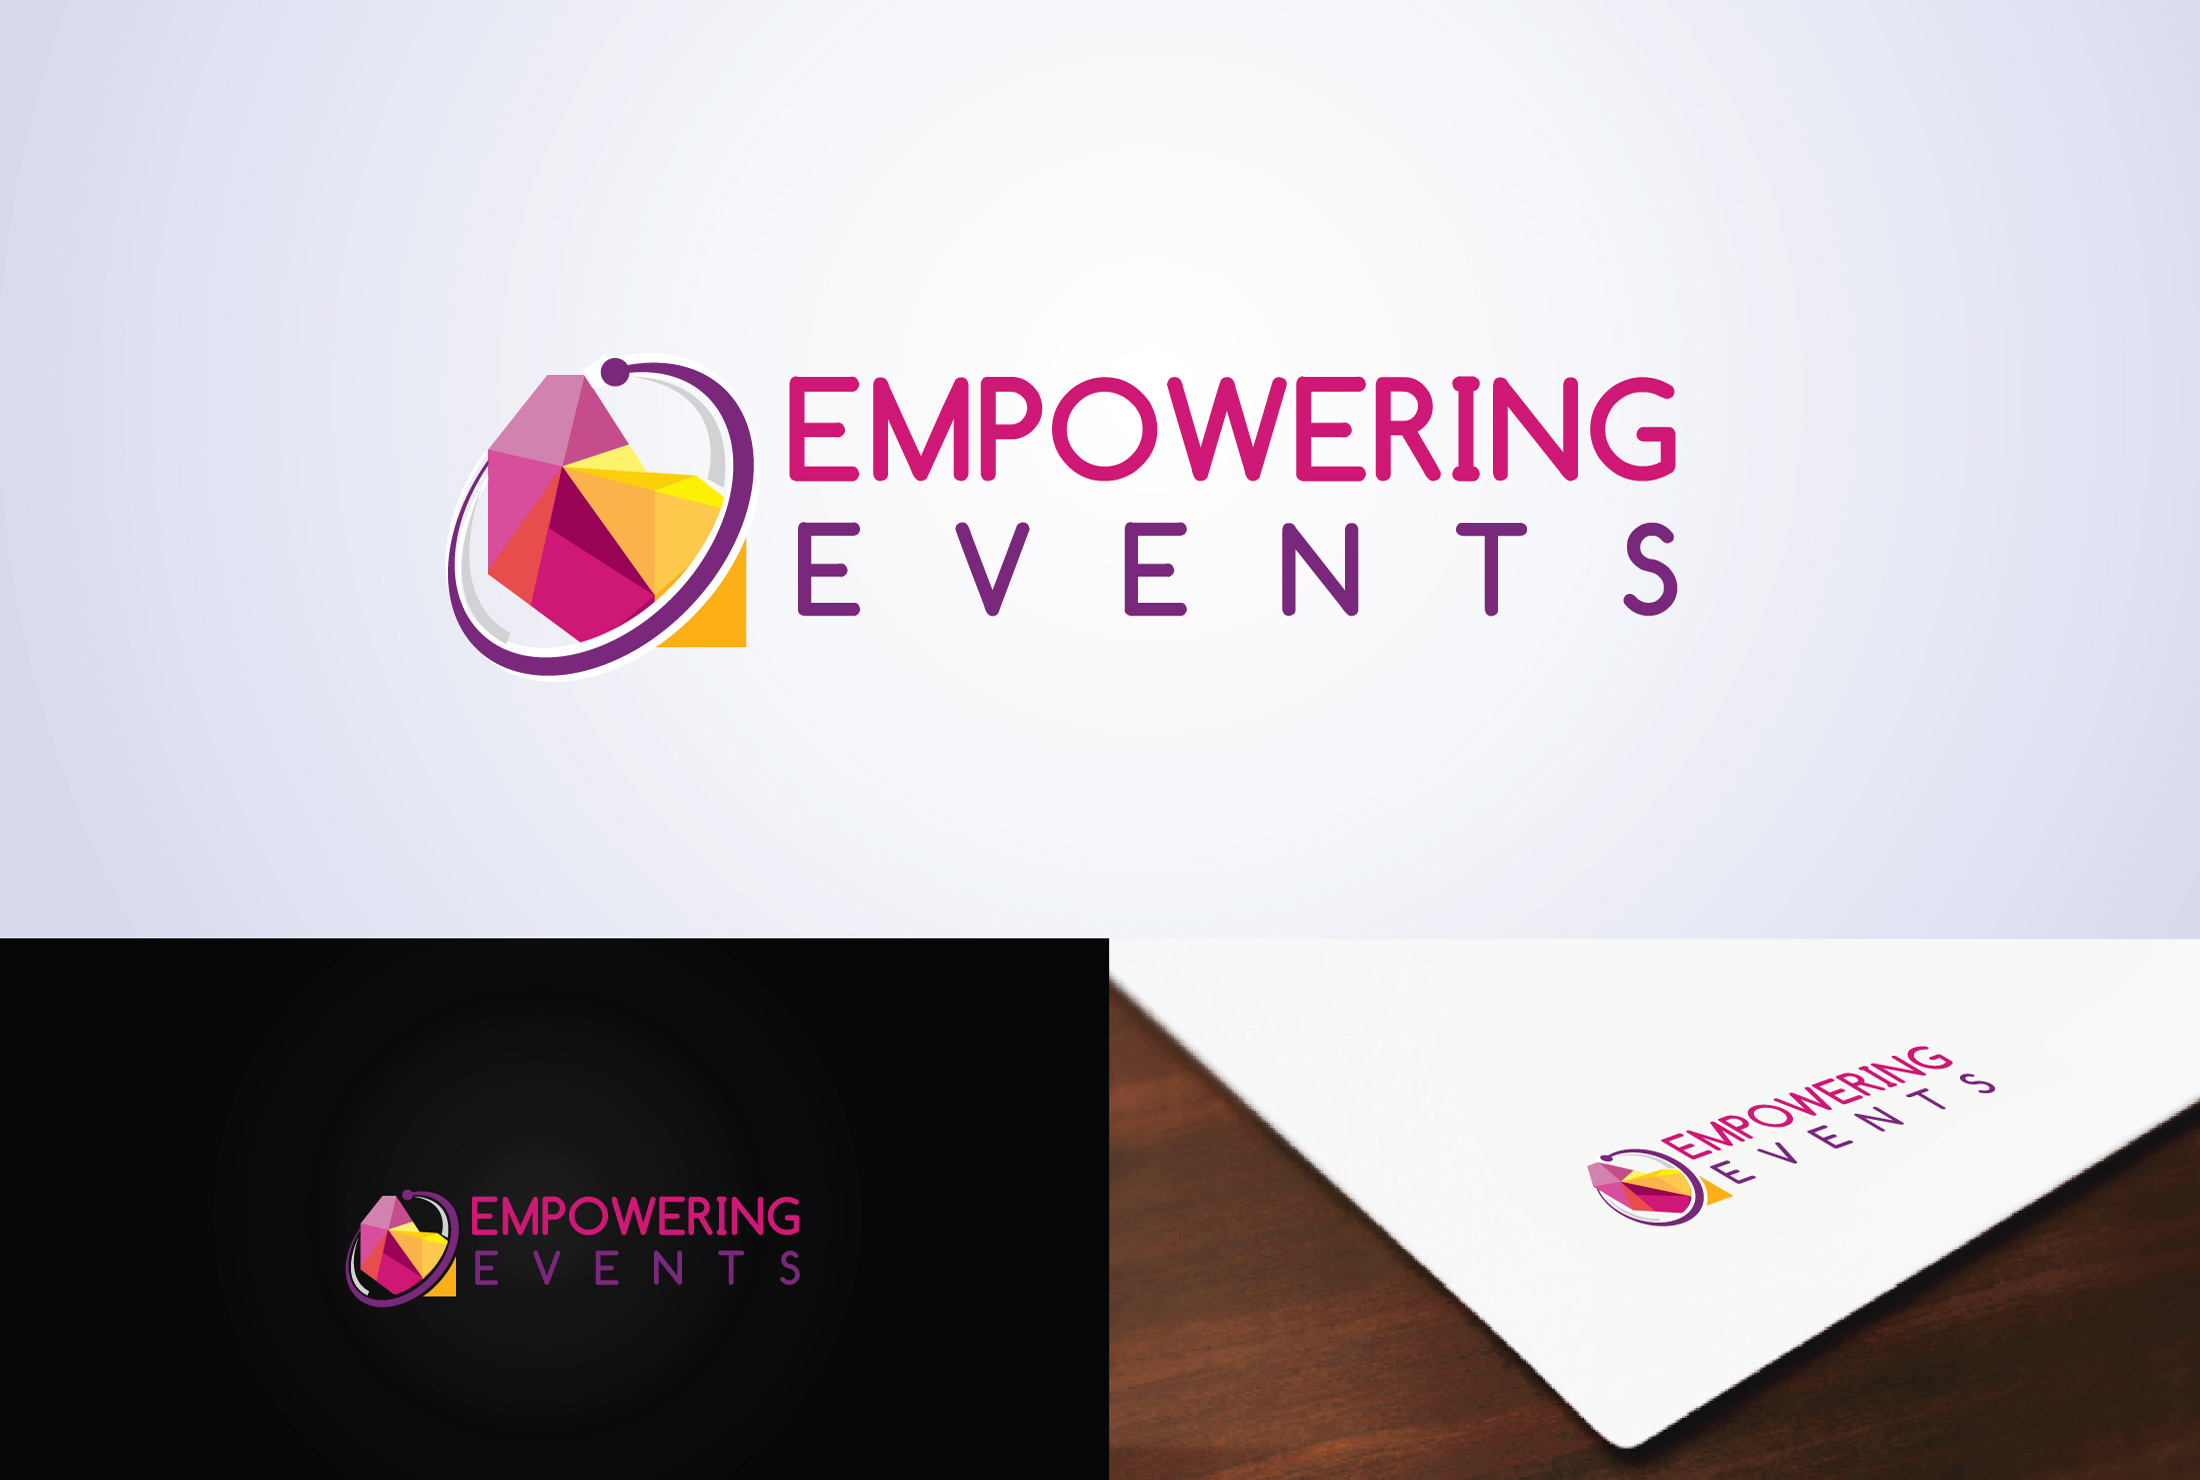 Communication on this topic: Create an Eye-Catching Logo to Focus Your , create-an-eye-catching-logo-to-focus-your/